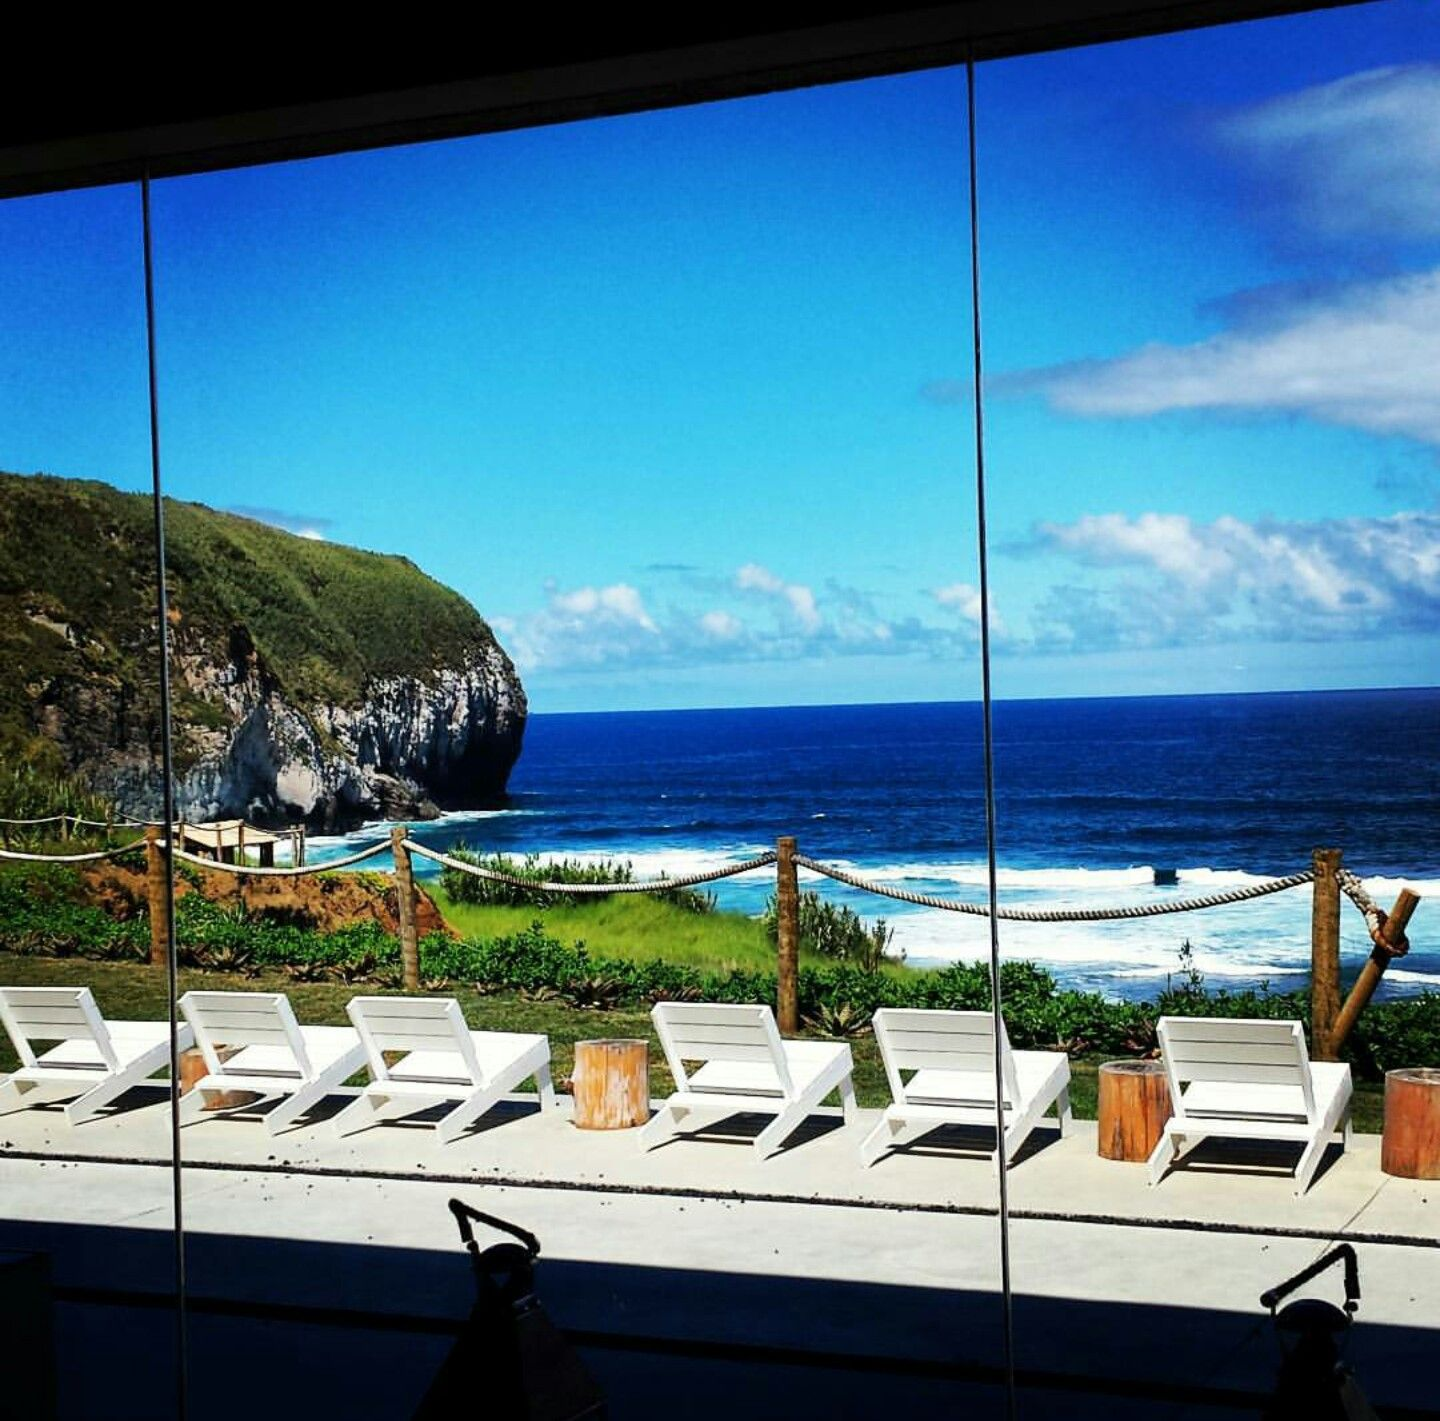 Eco Beach Resort Santa Barbara Sao Miguel Azores Photo Credit Gabriela T